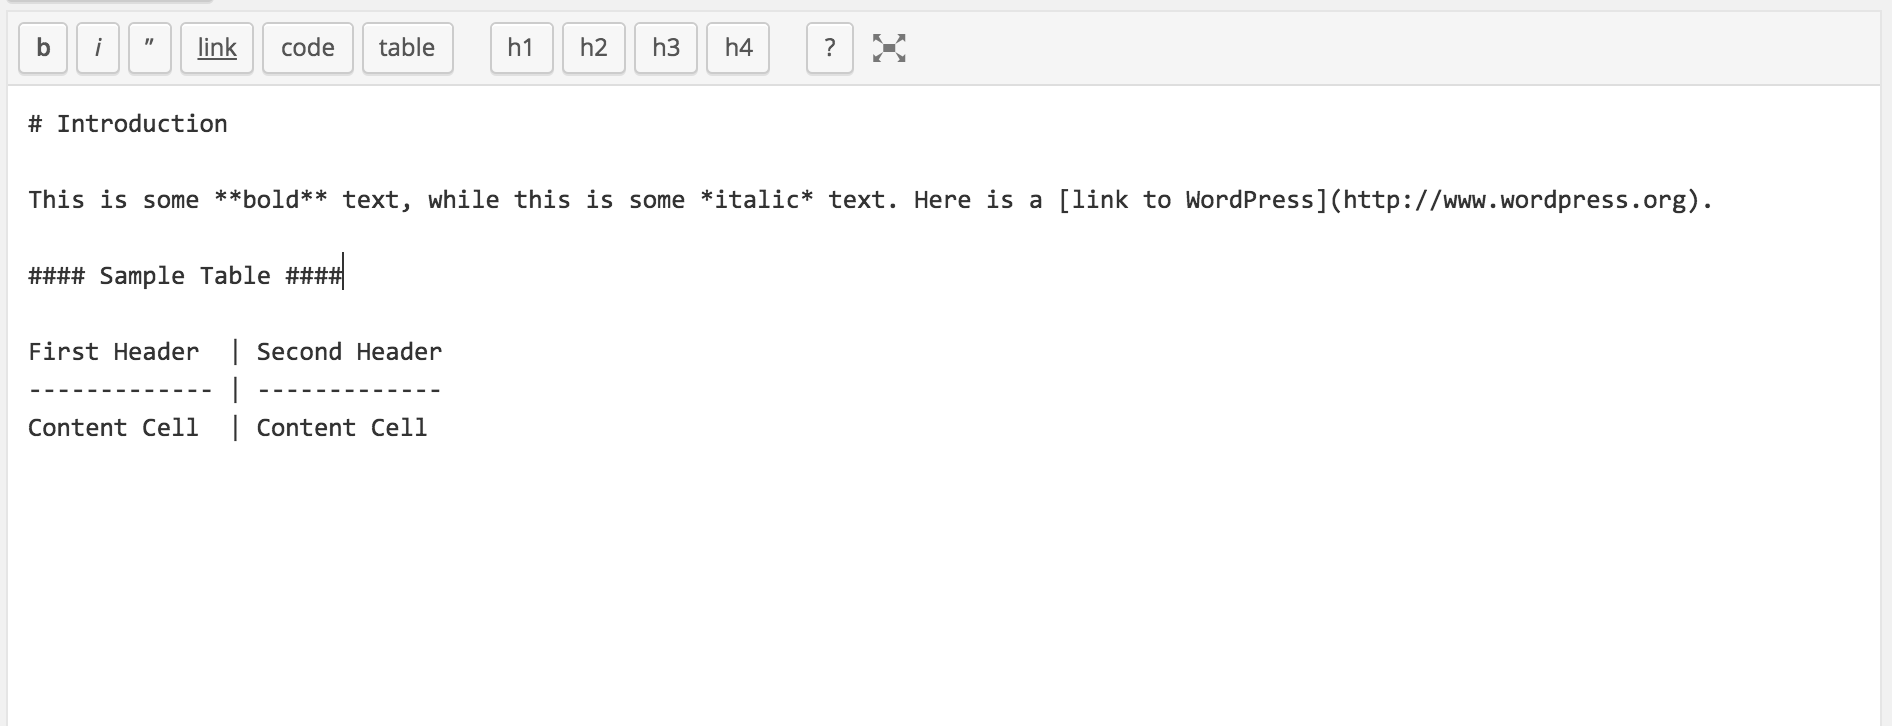 This shows the text editor with Markdown buttons